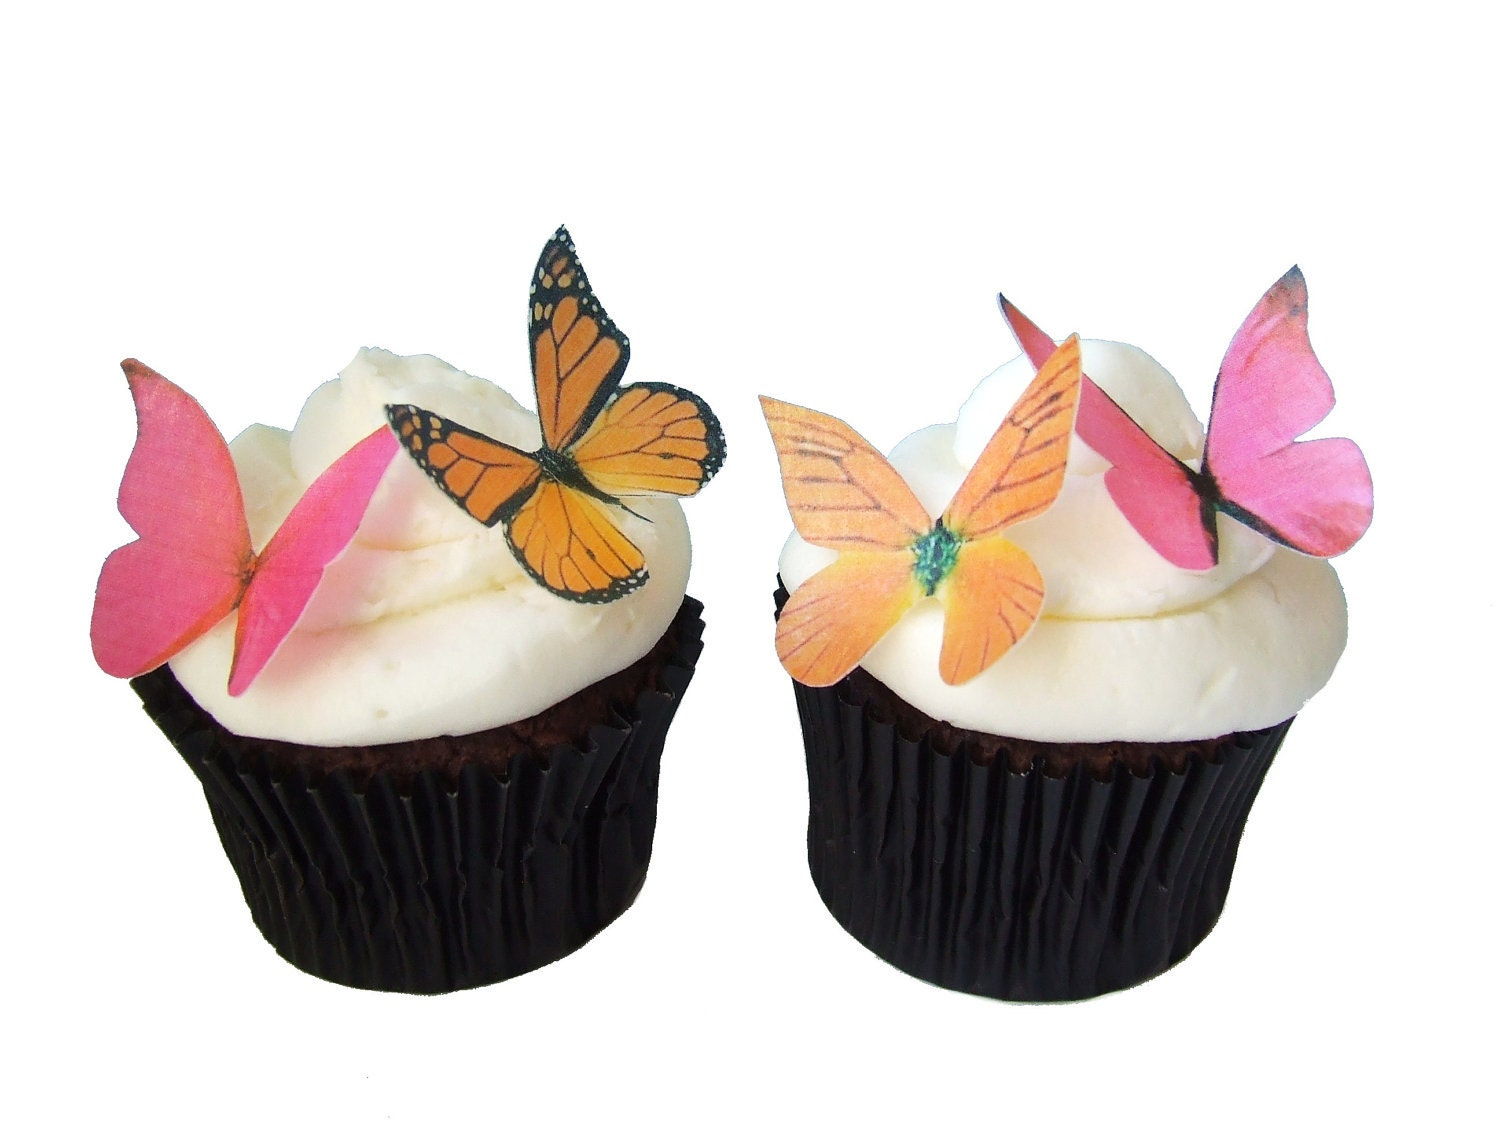 Cake Decorations Edible Pictures : Edible Butterflies CAKE DECORATIONS 24 Edible Butterflies